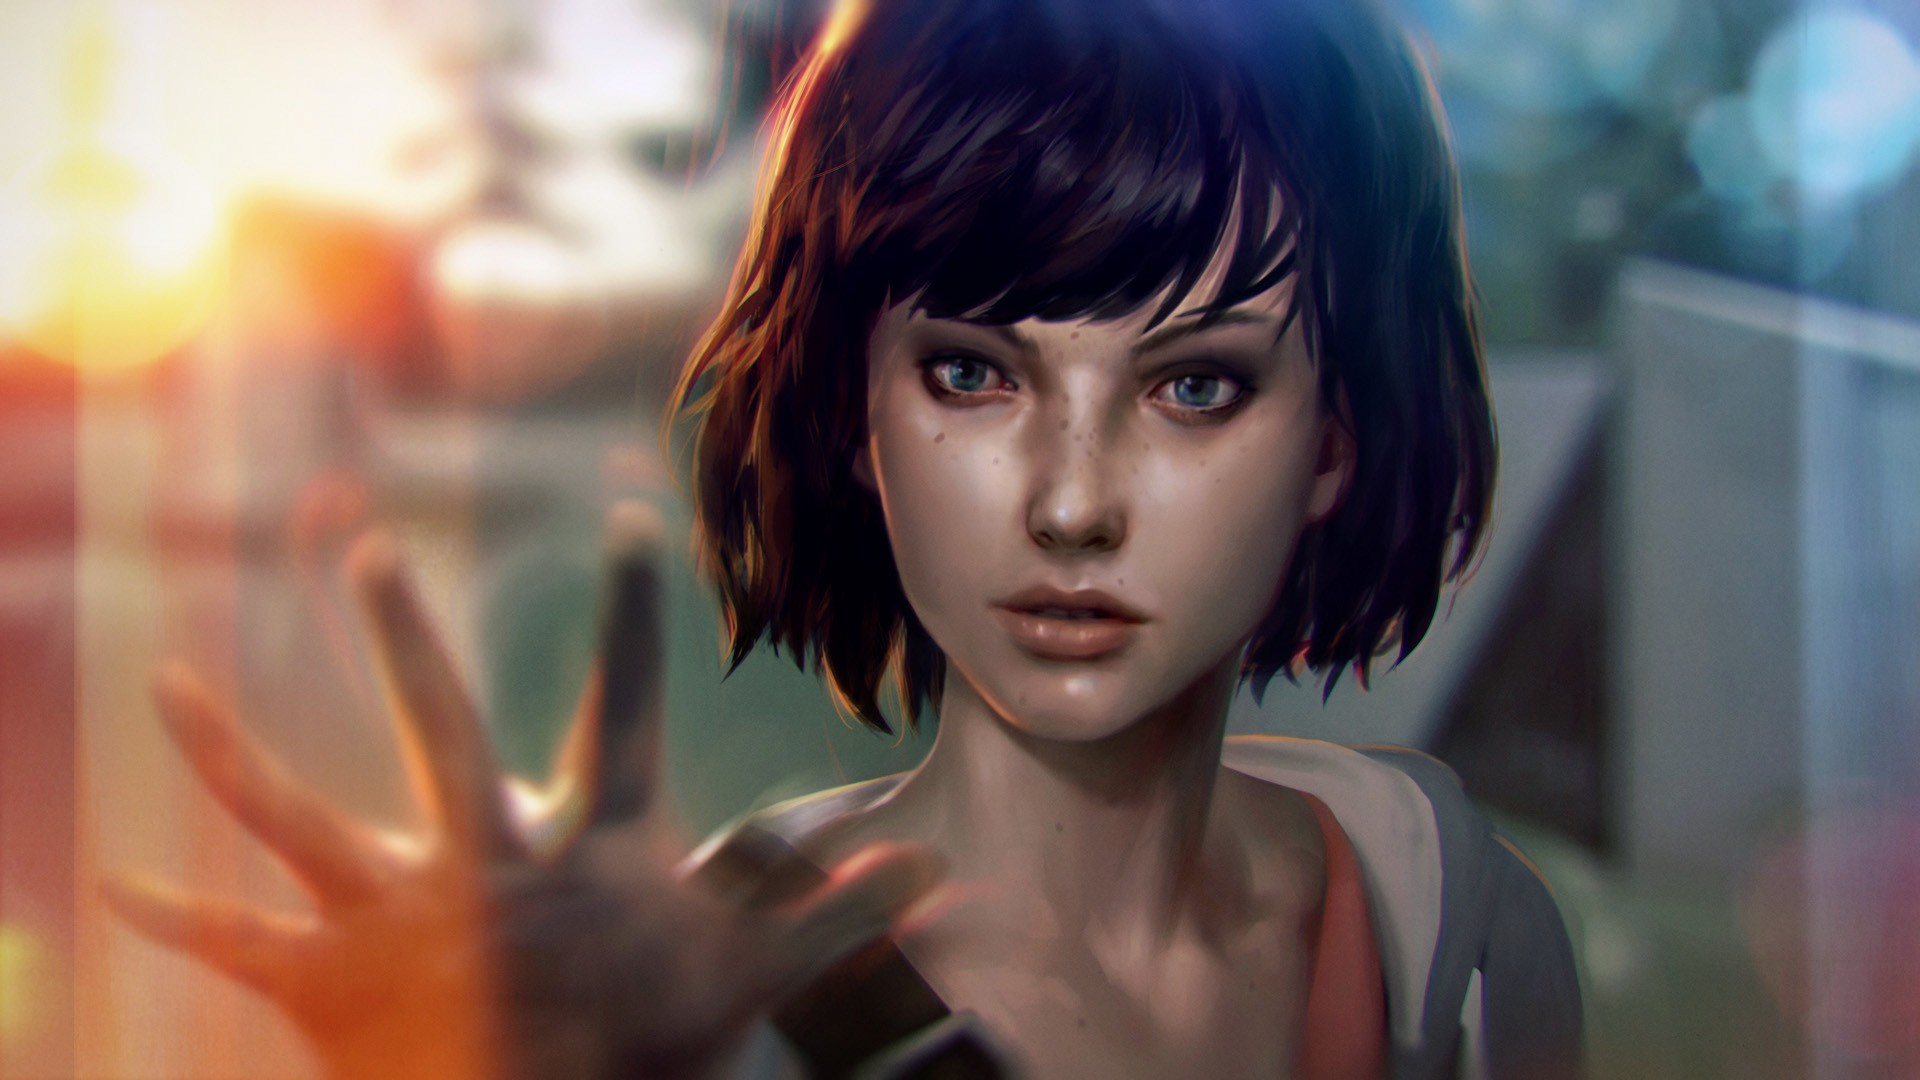 Concept art of Max Caulfield from Life is Strange